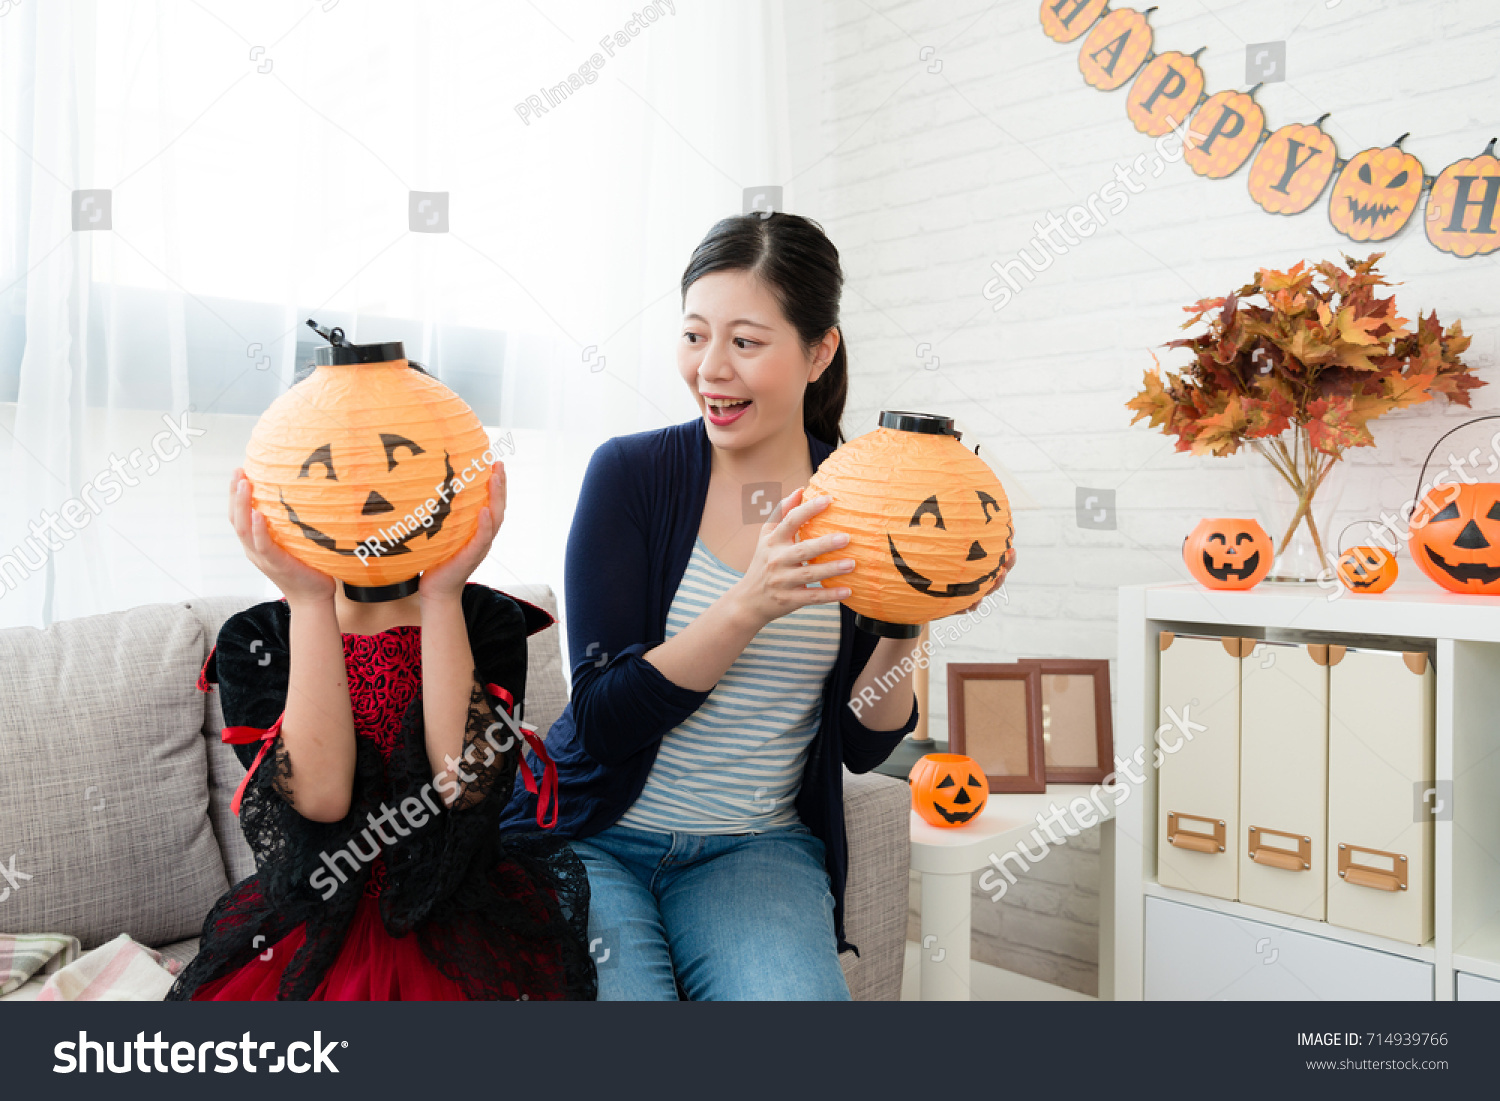 naughty girl wear halloween costume dress stock photo (edit now